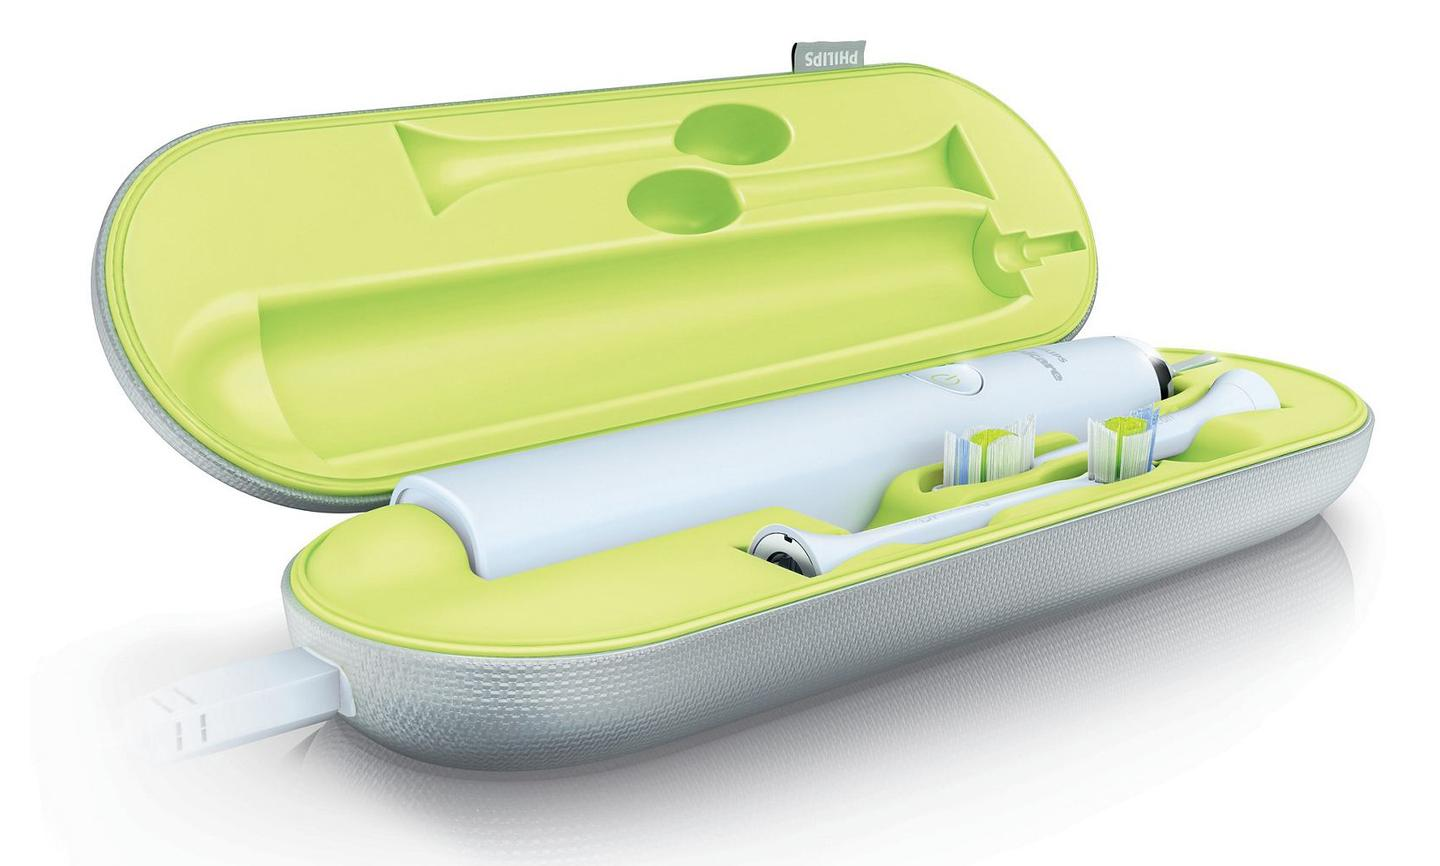 The USB Charging travel case